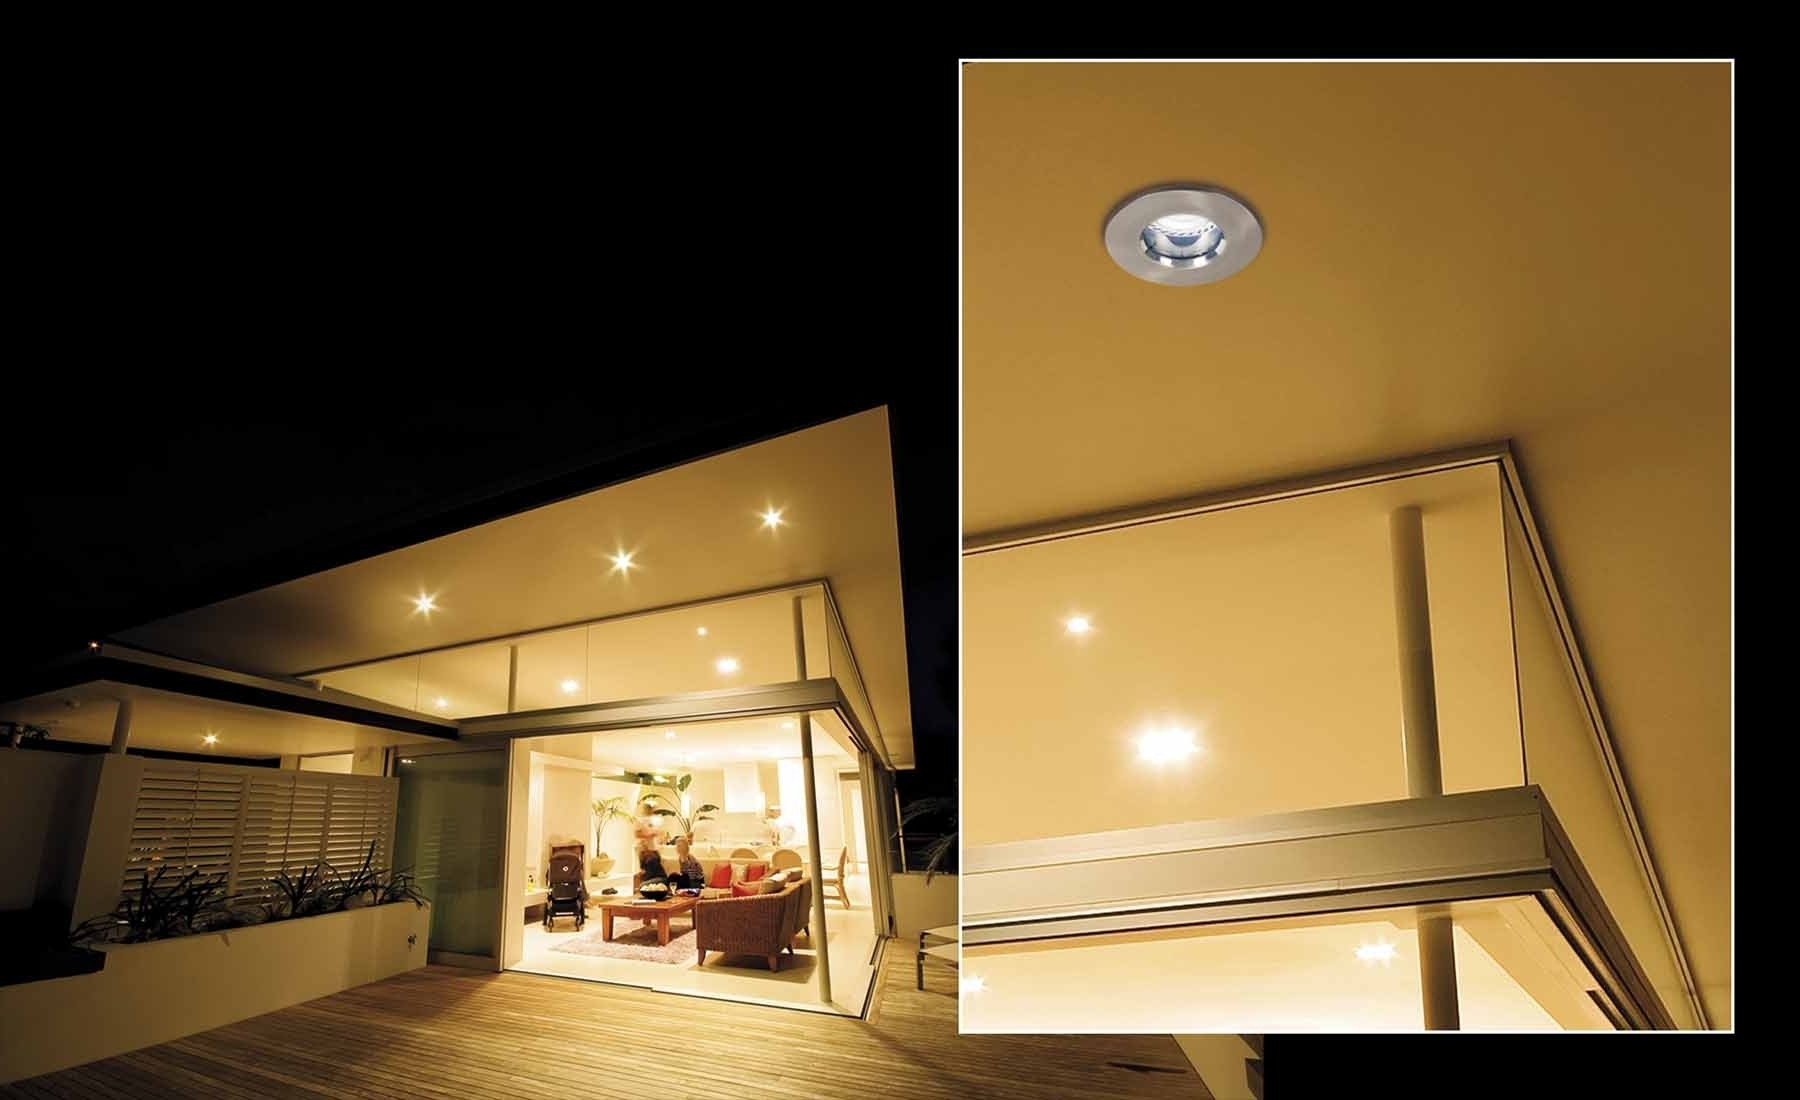 Outdoor Ceiling Lights For Patio For 2018 Outdoor Ceiling Lights For Patio • Outdoor Lighting (View 17 of 20)